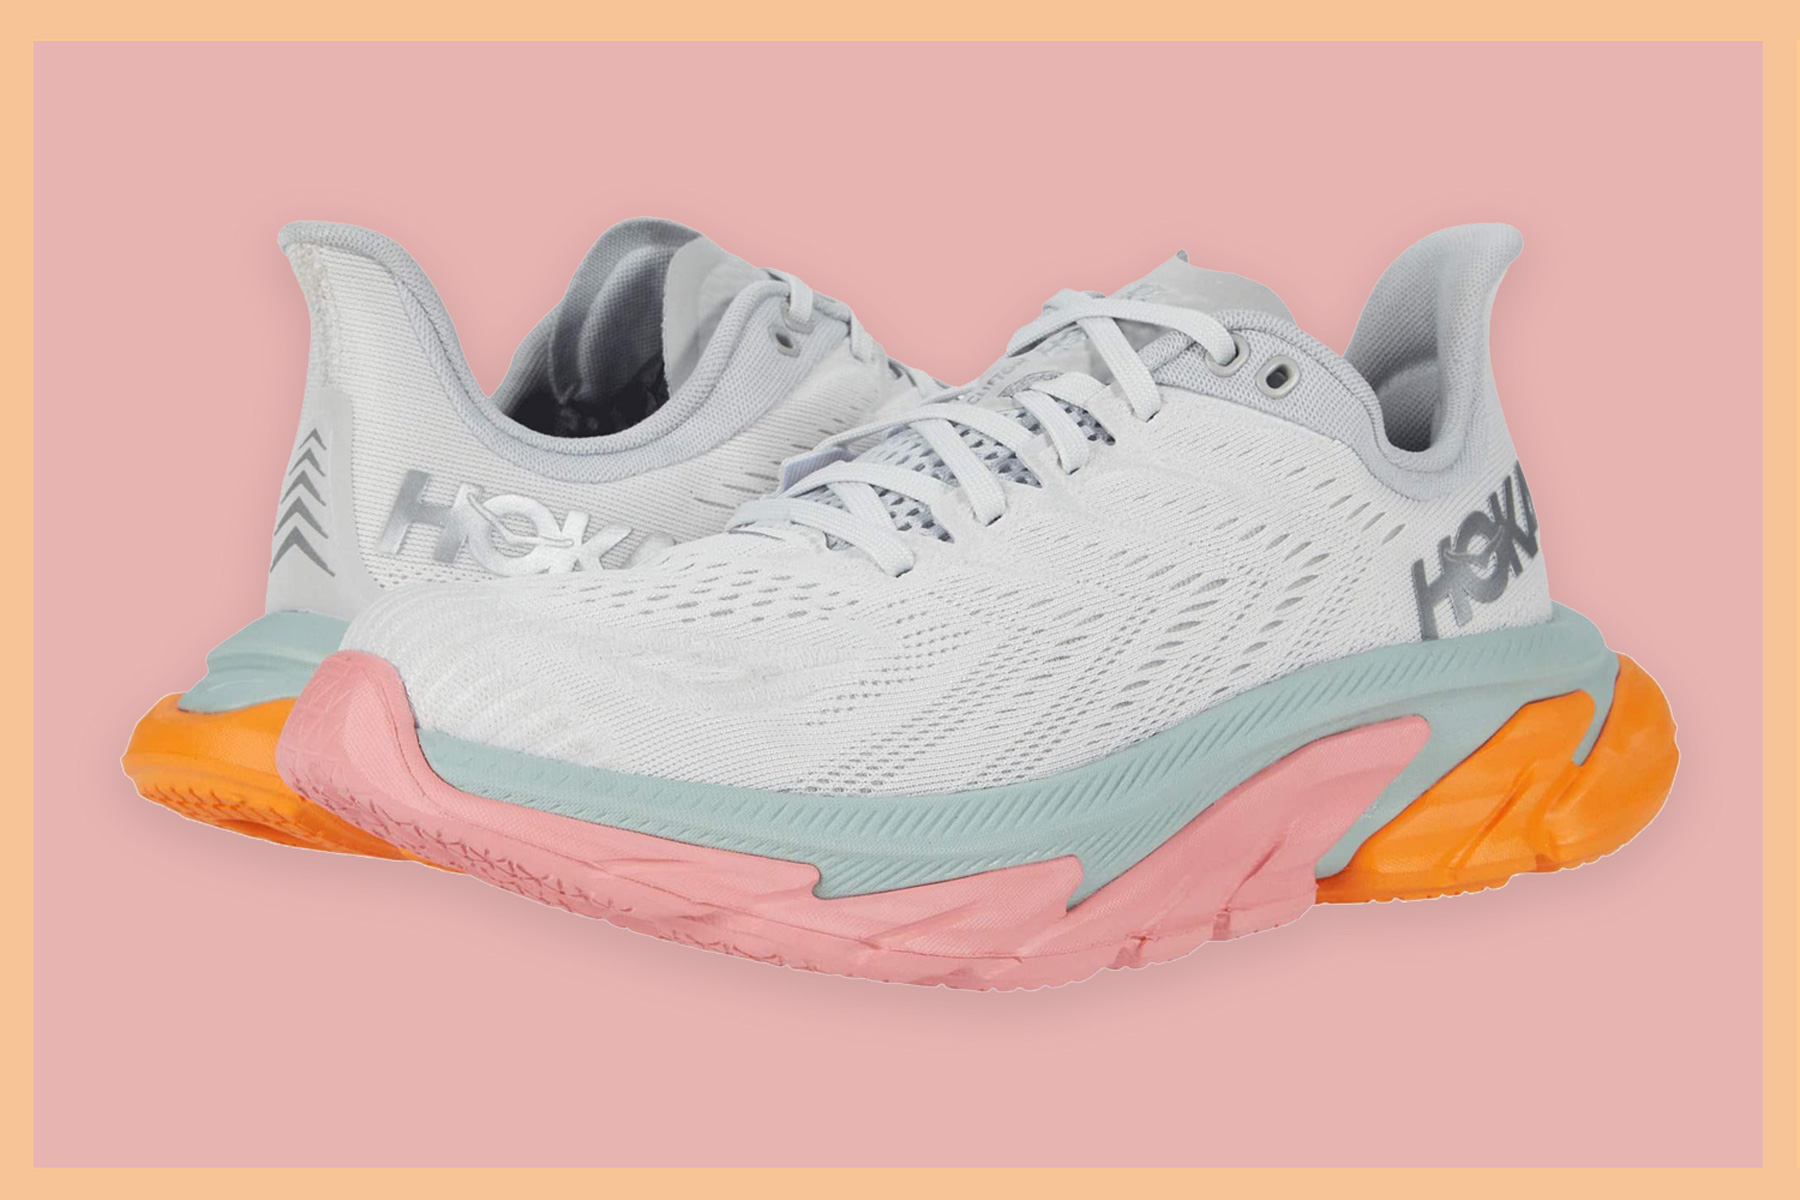 White, pink, and orange running shoes